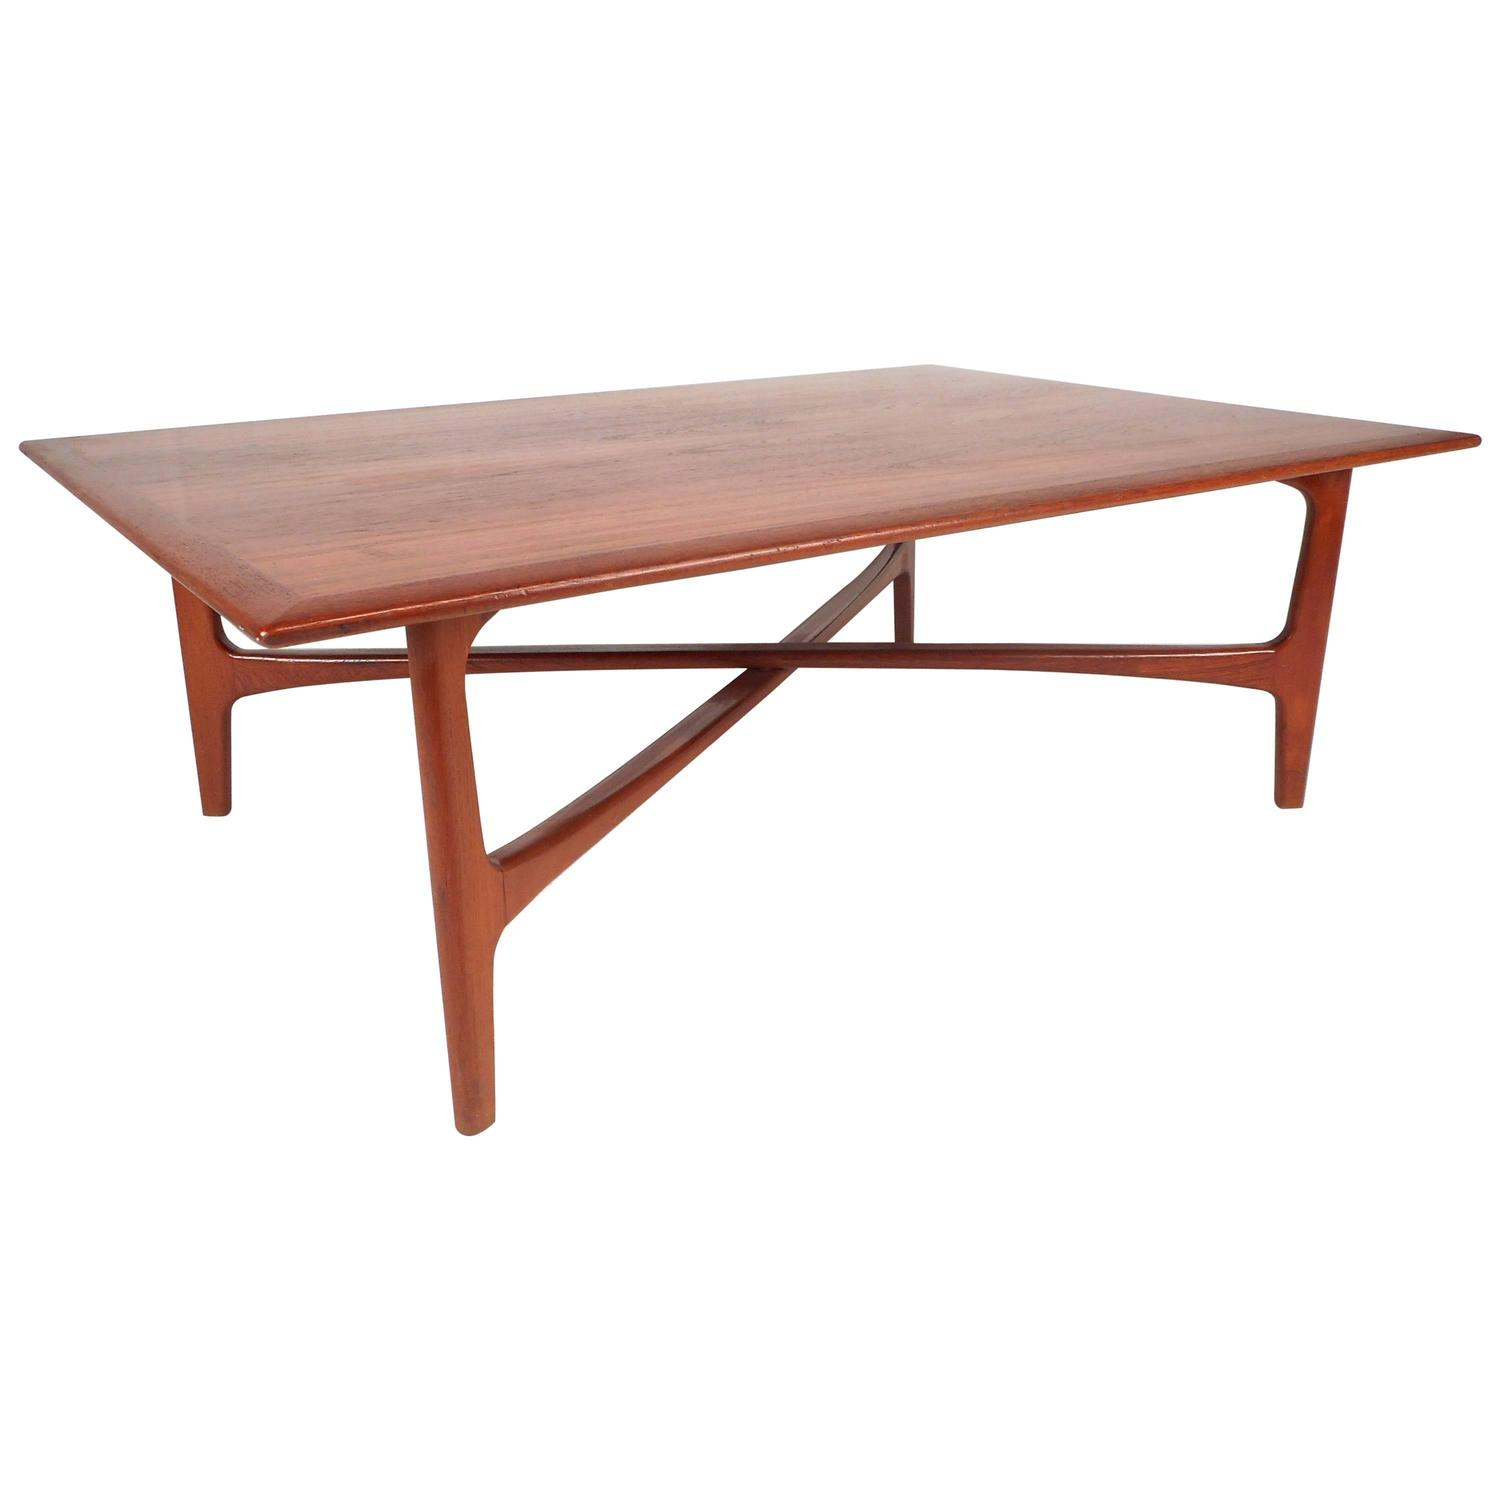 Mid Century Modern Oversized Danish Teak Coffee Table by DUX